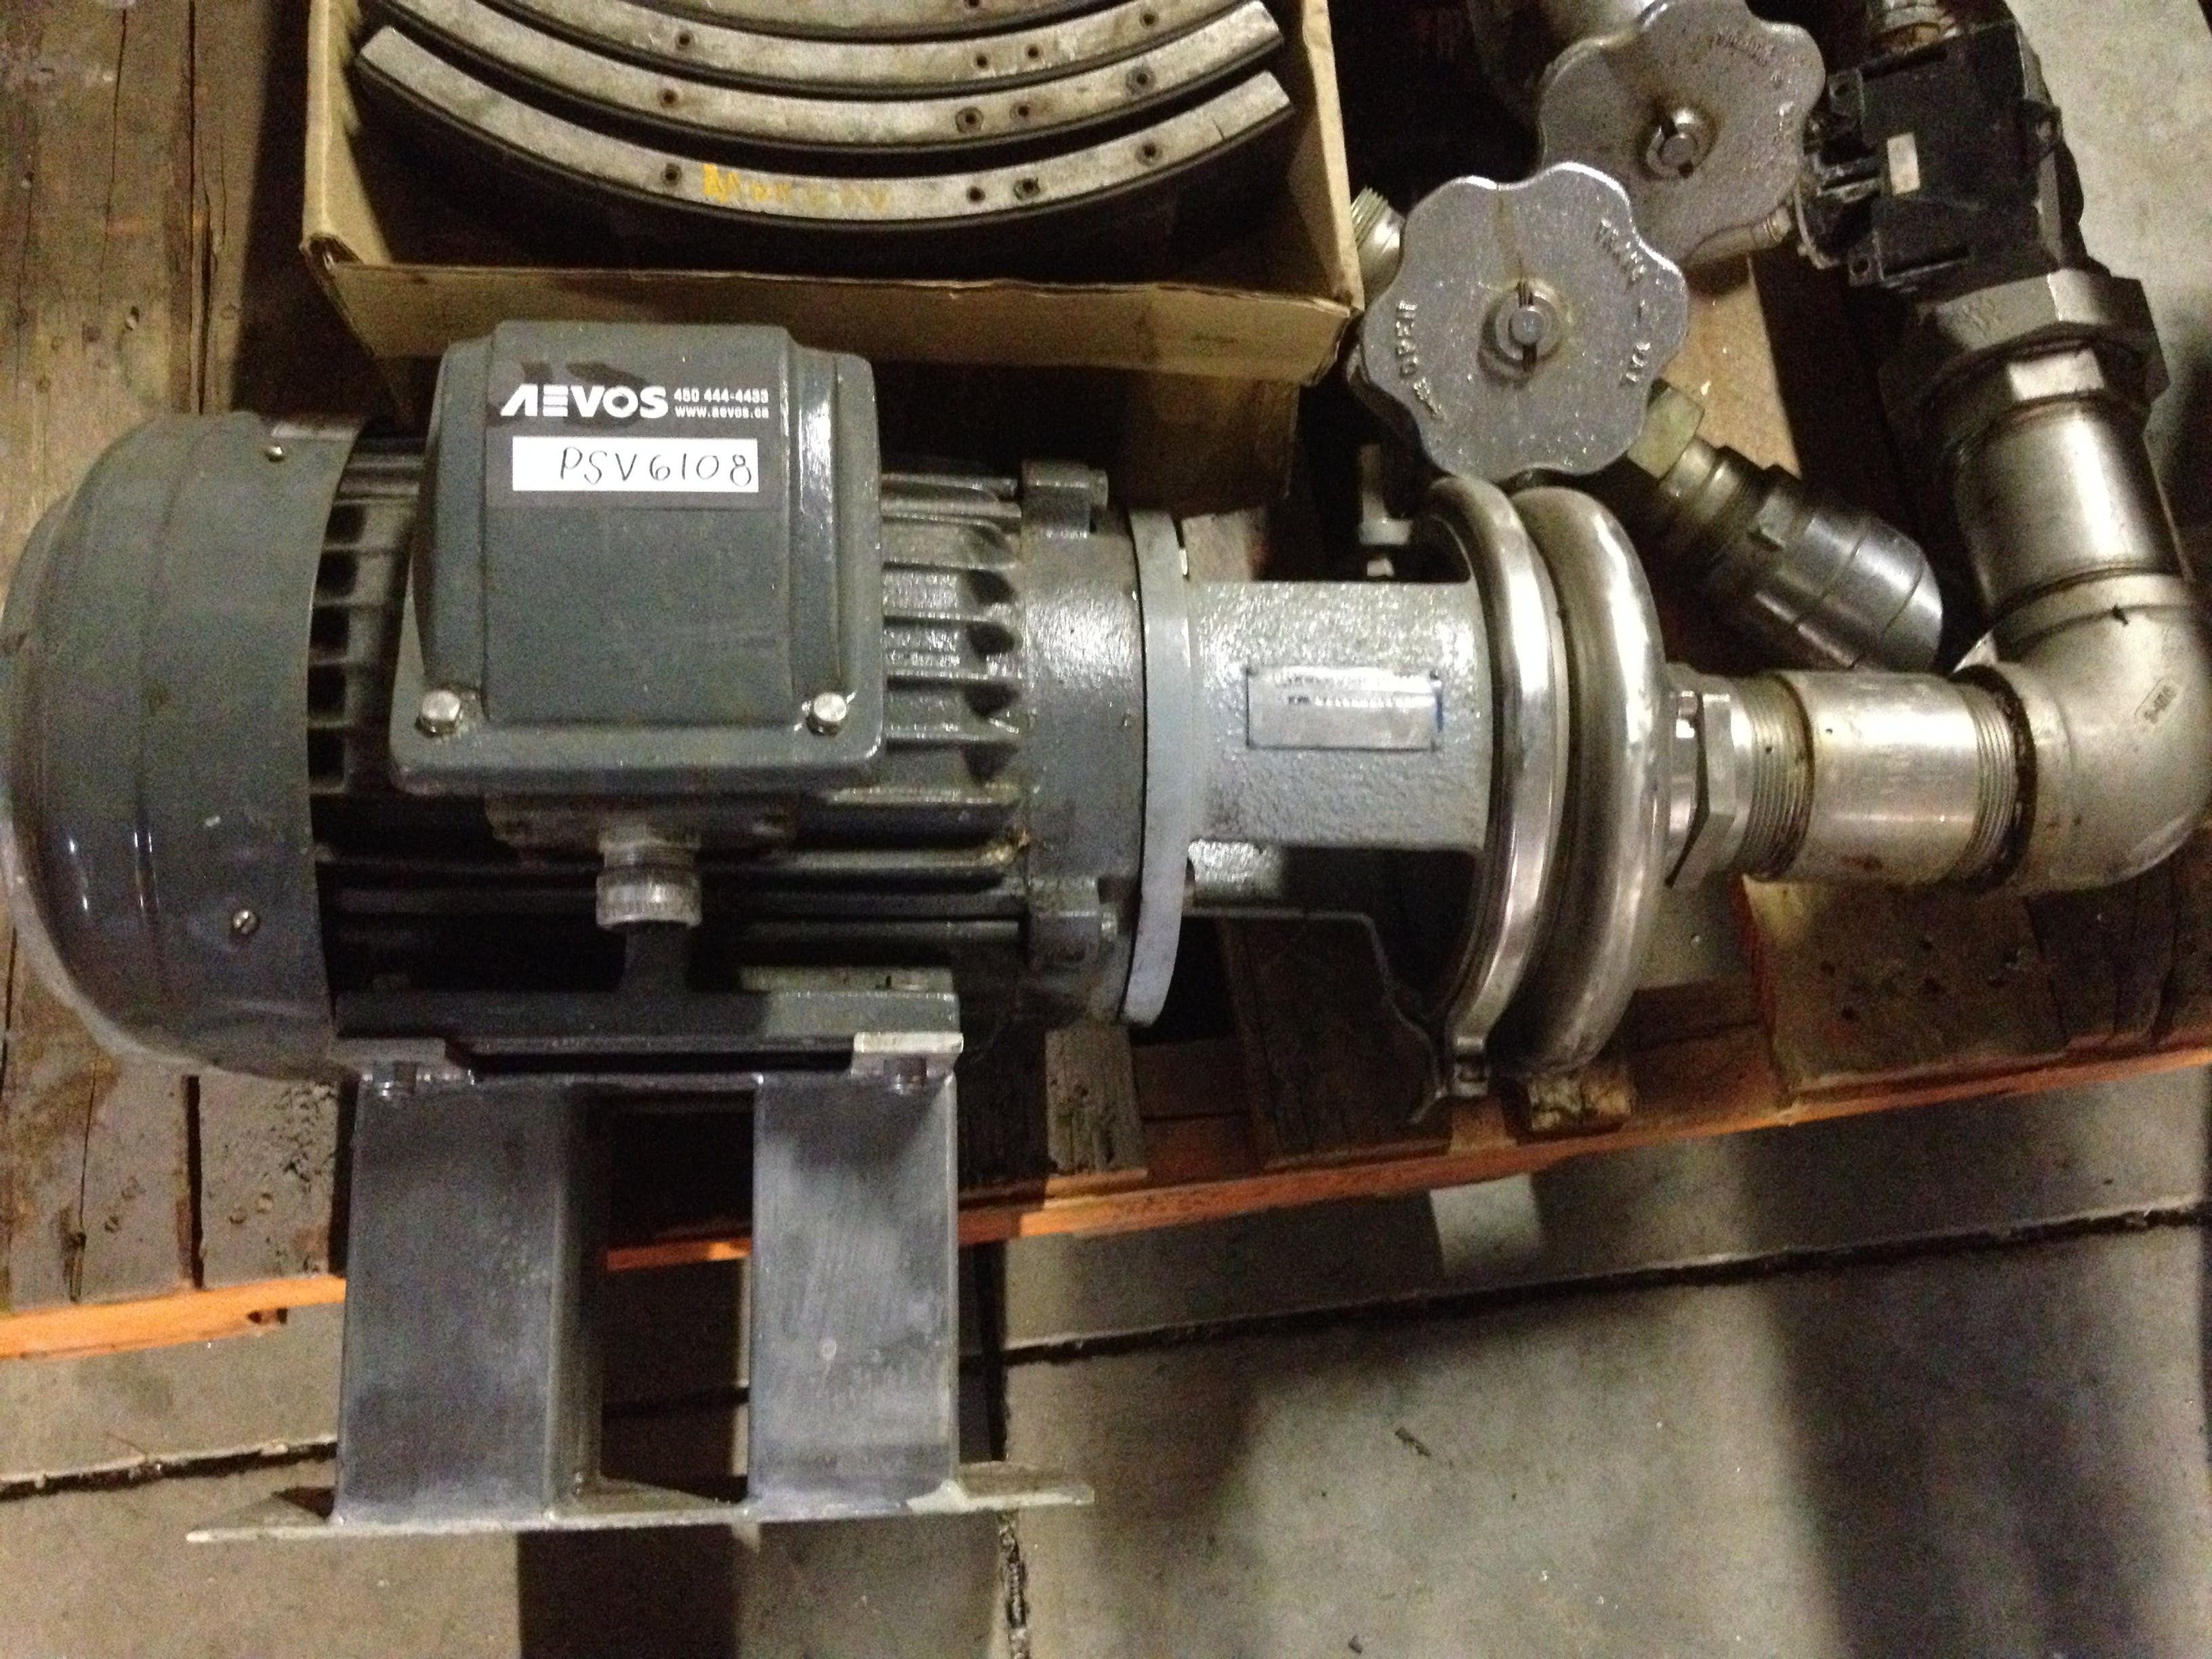 TRI-CLOVER C218MD211-S Pump Transfer pump sold by Aevos Equipment